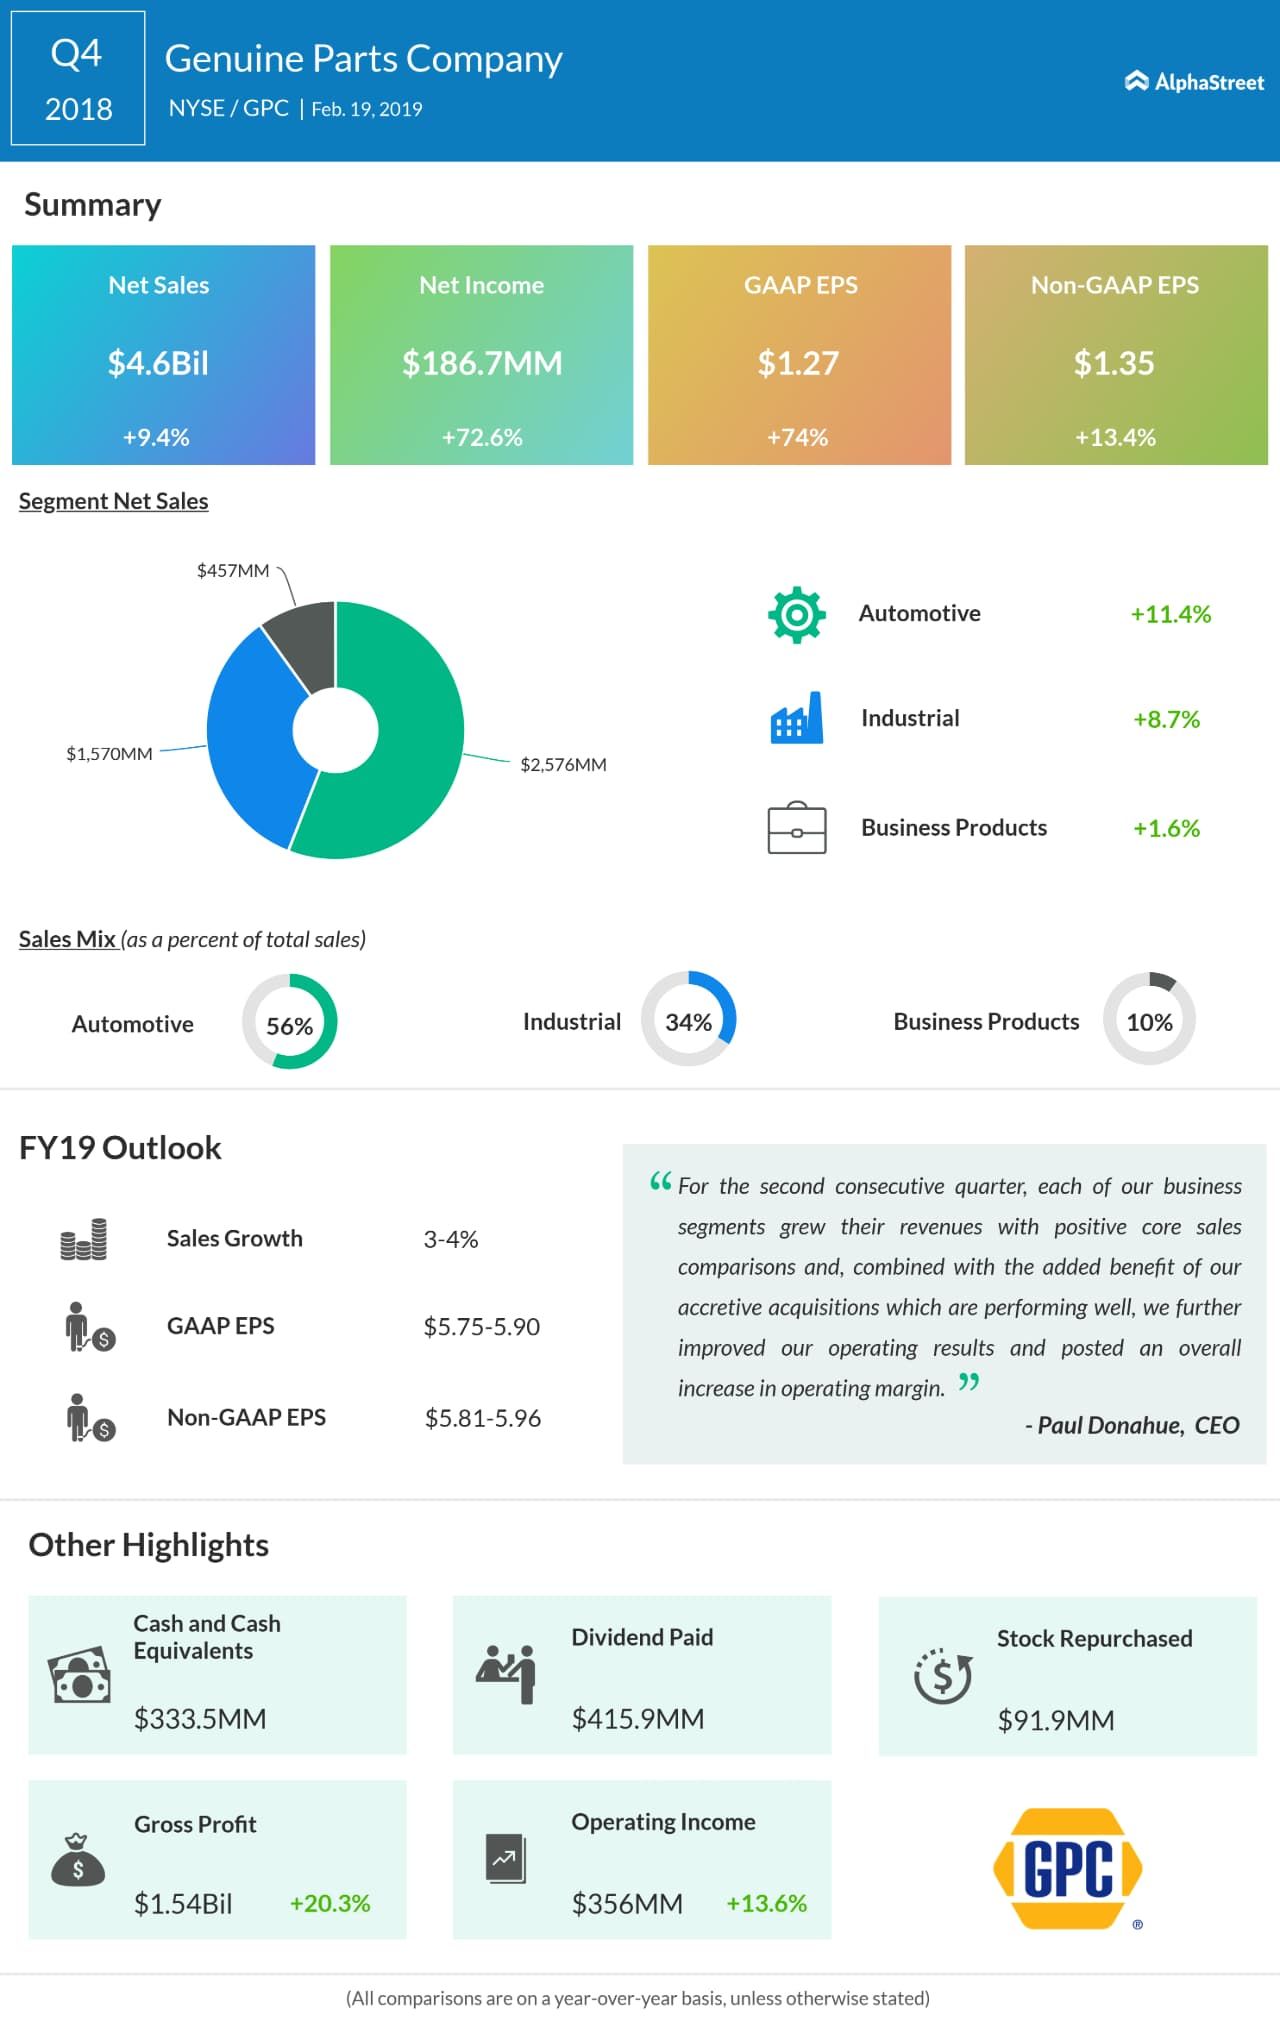 Genuine Parts fourth quarter 2018 earnings snapshot